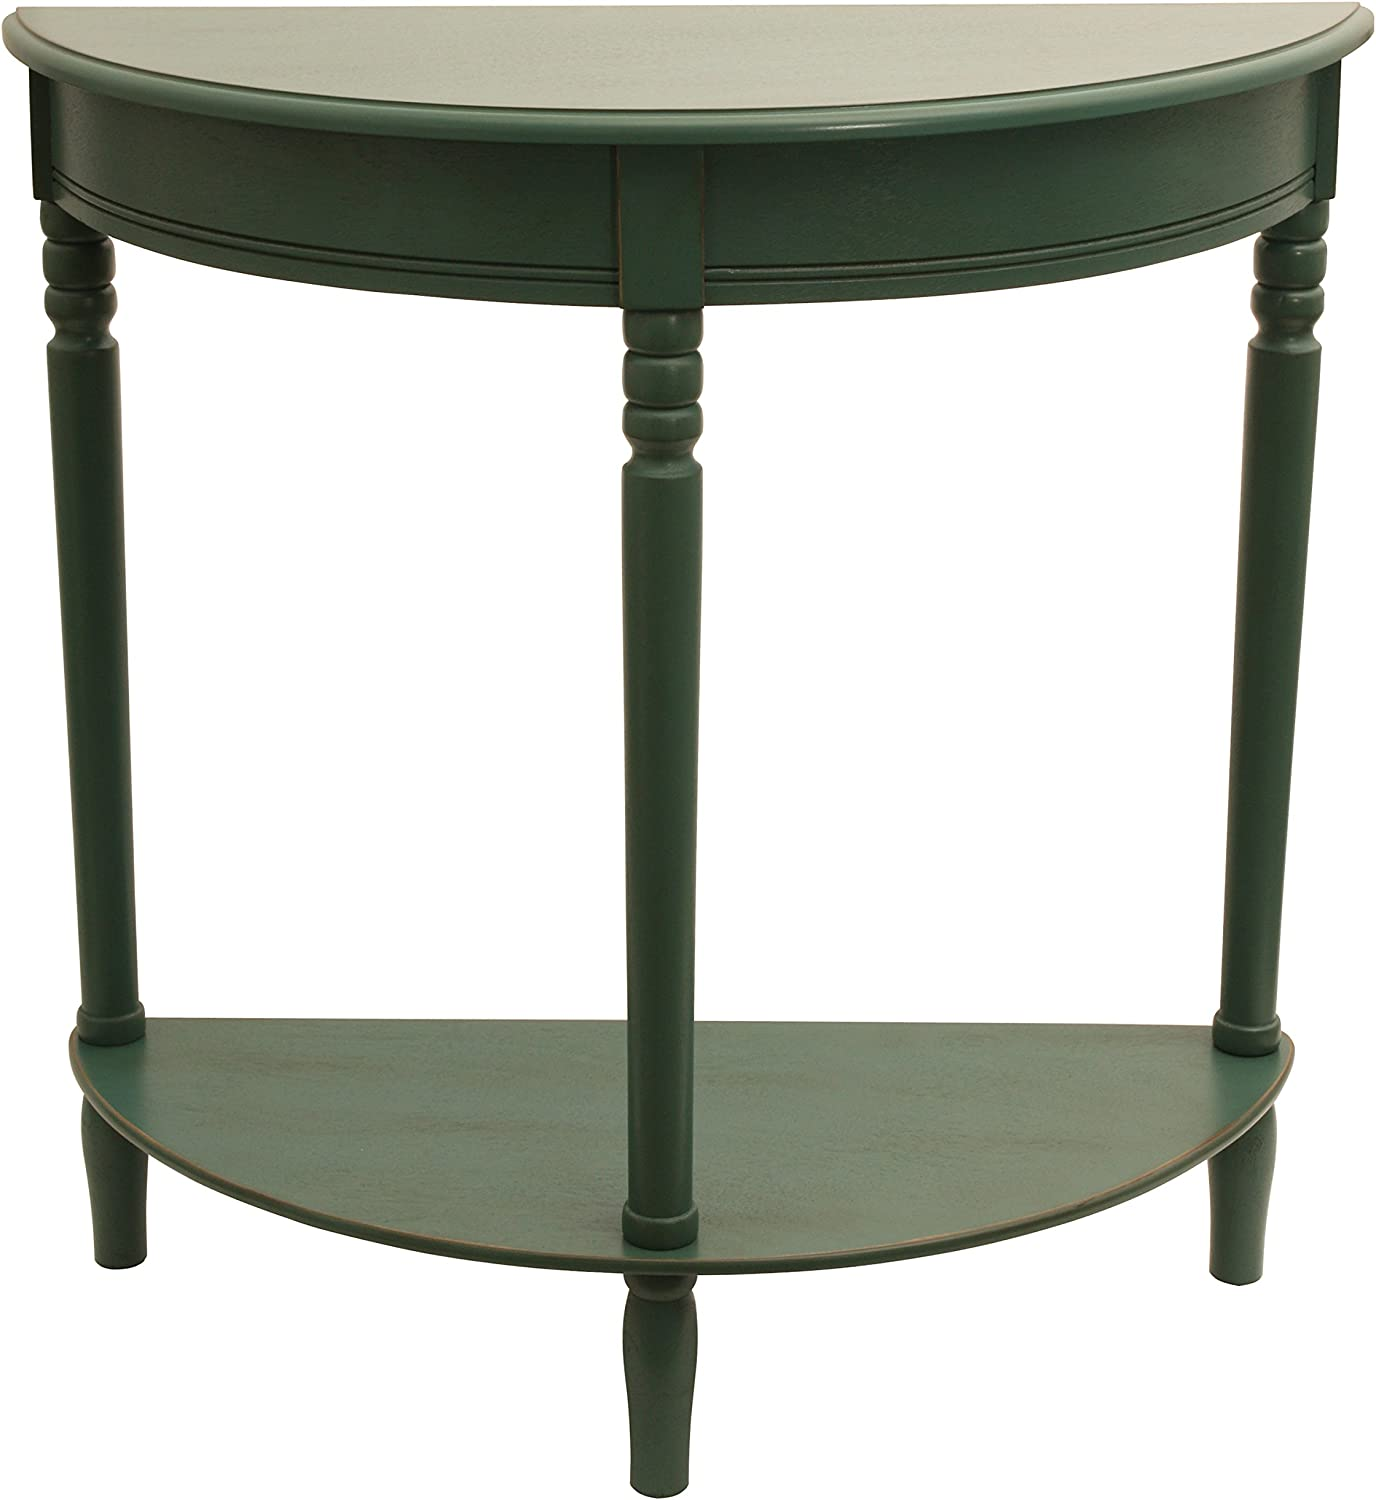 Décor Therapy Antique Teal Half Round Table